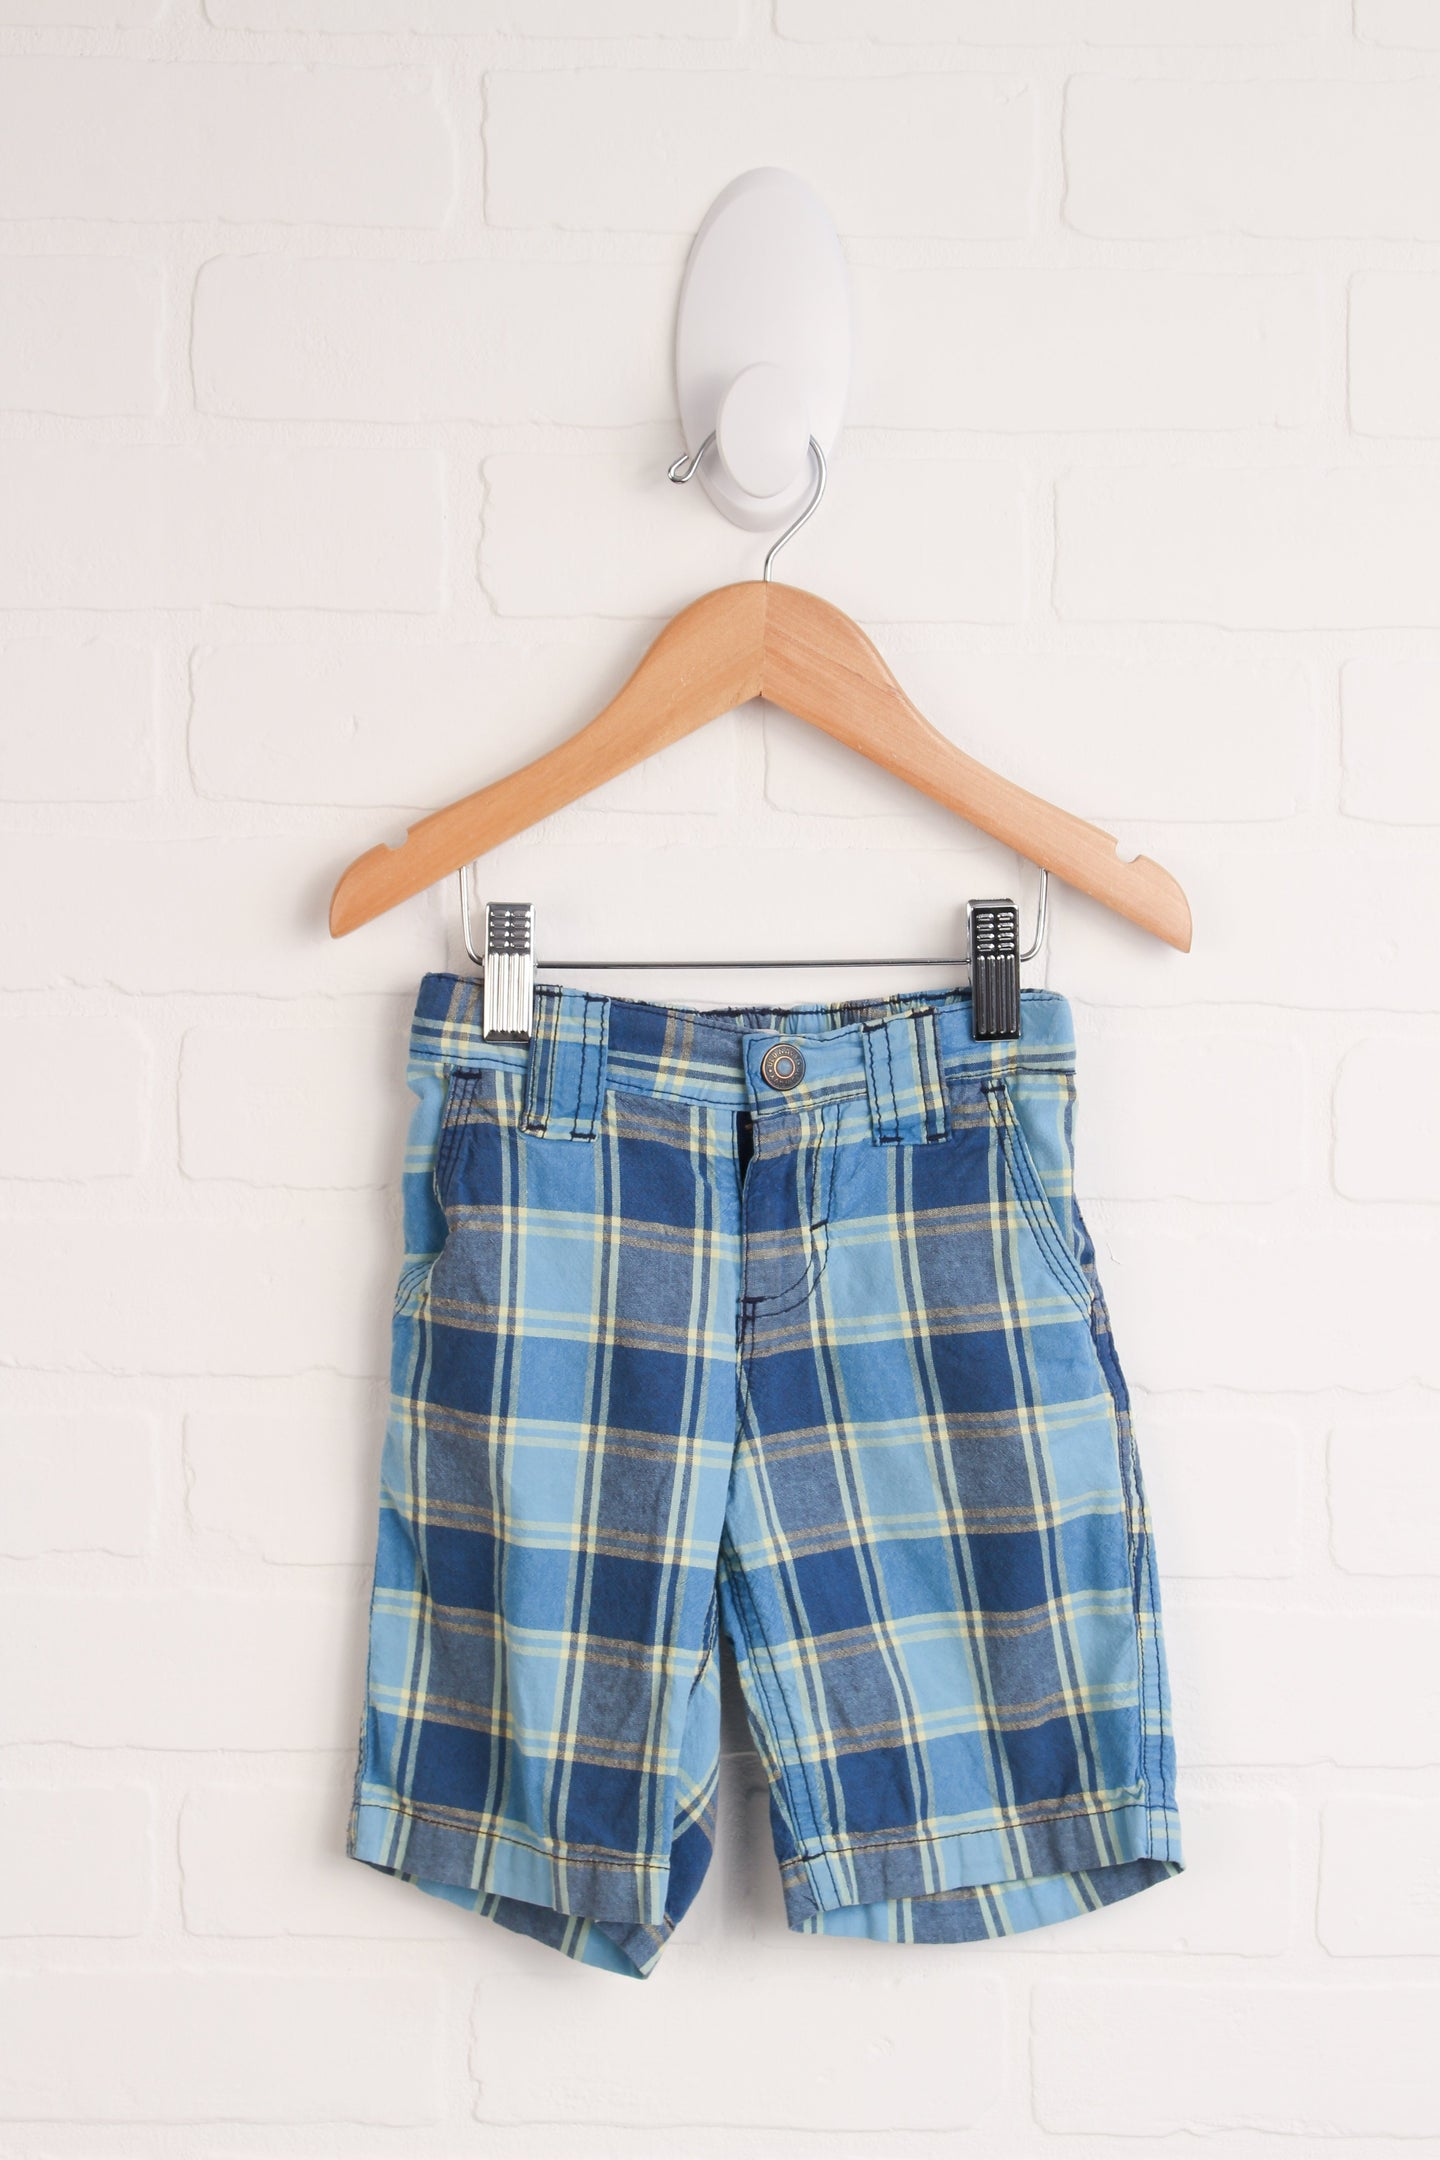 Blue + Yellow Plaid Shorts (Size 2T)